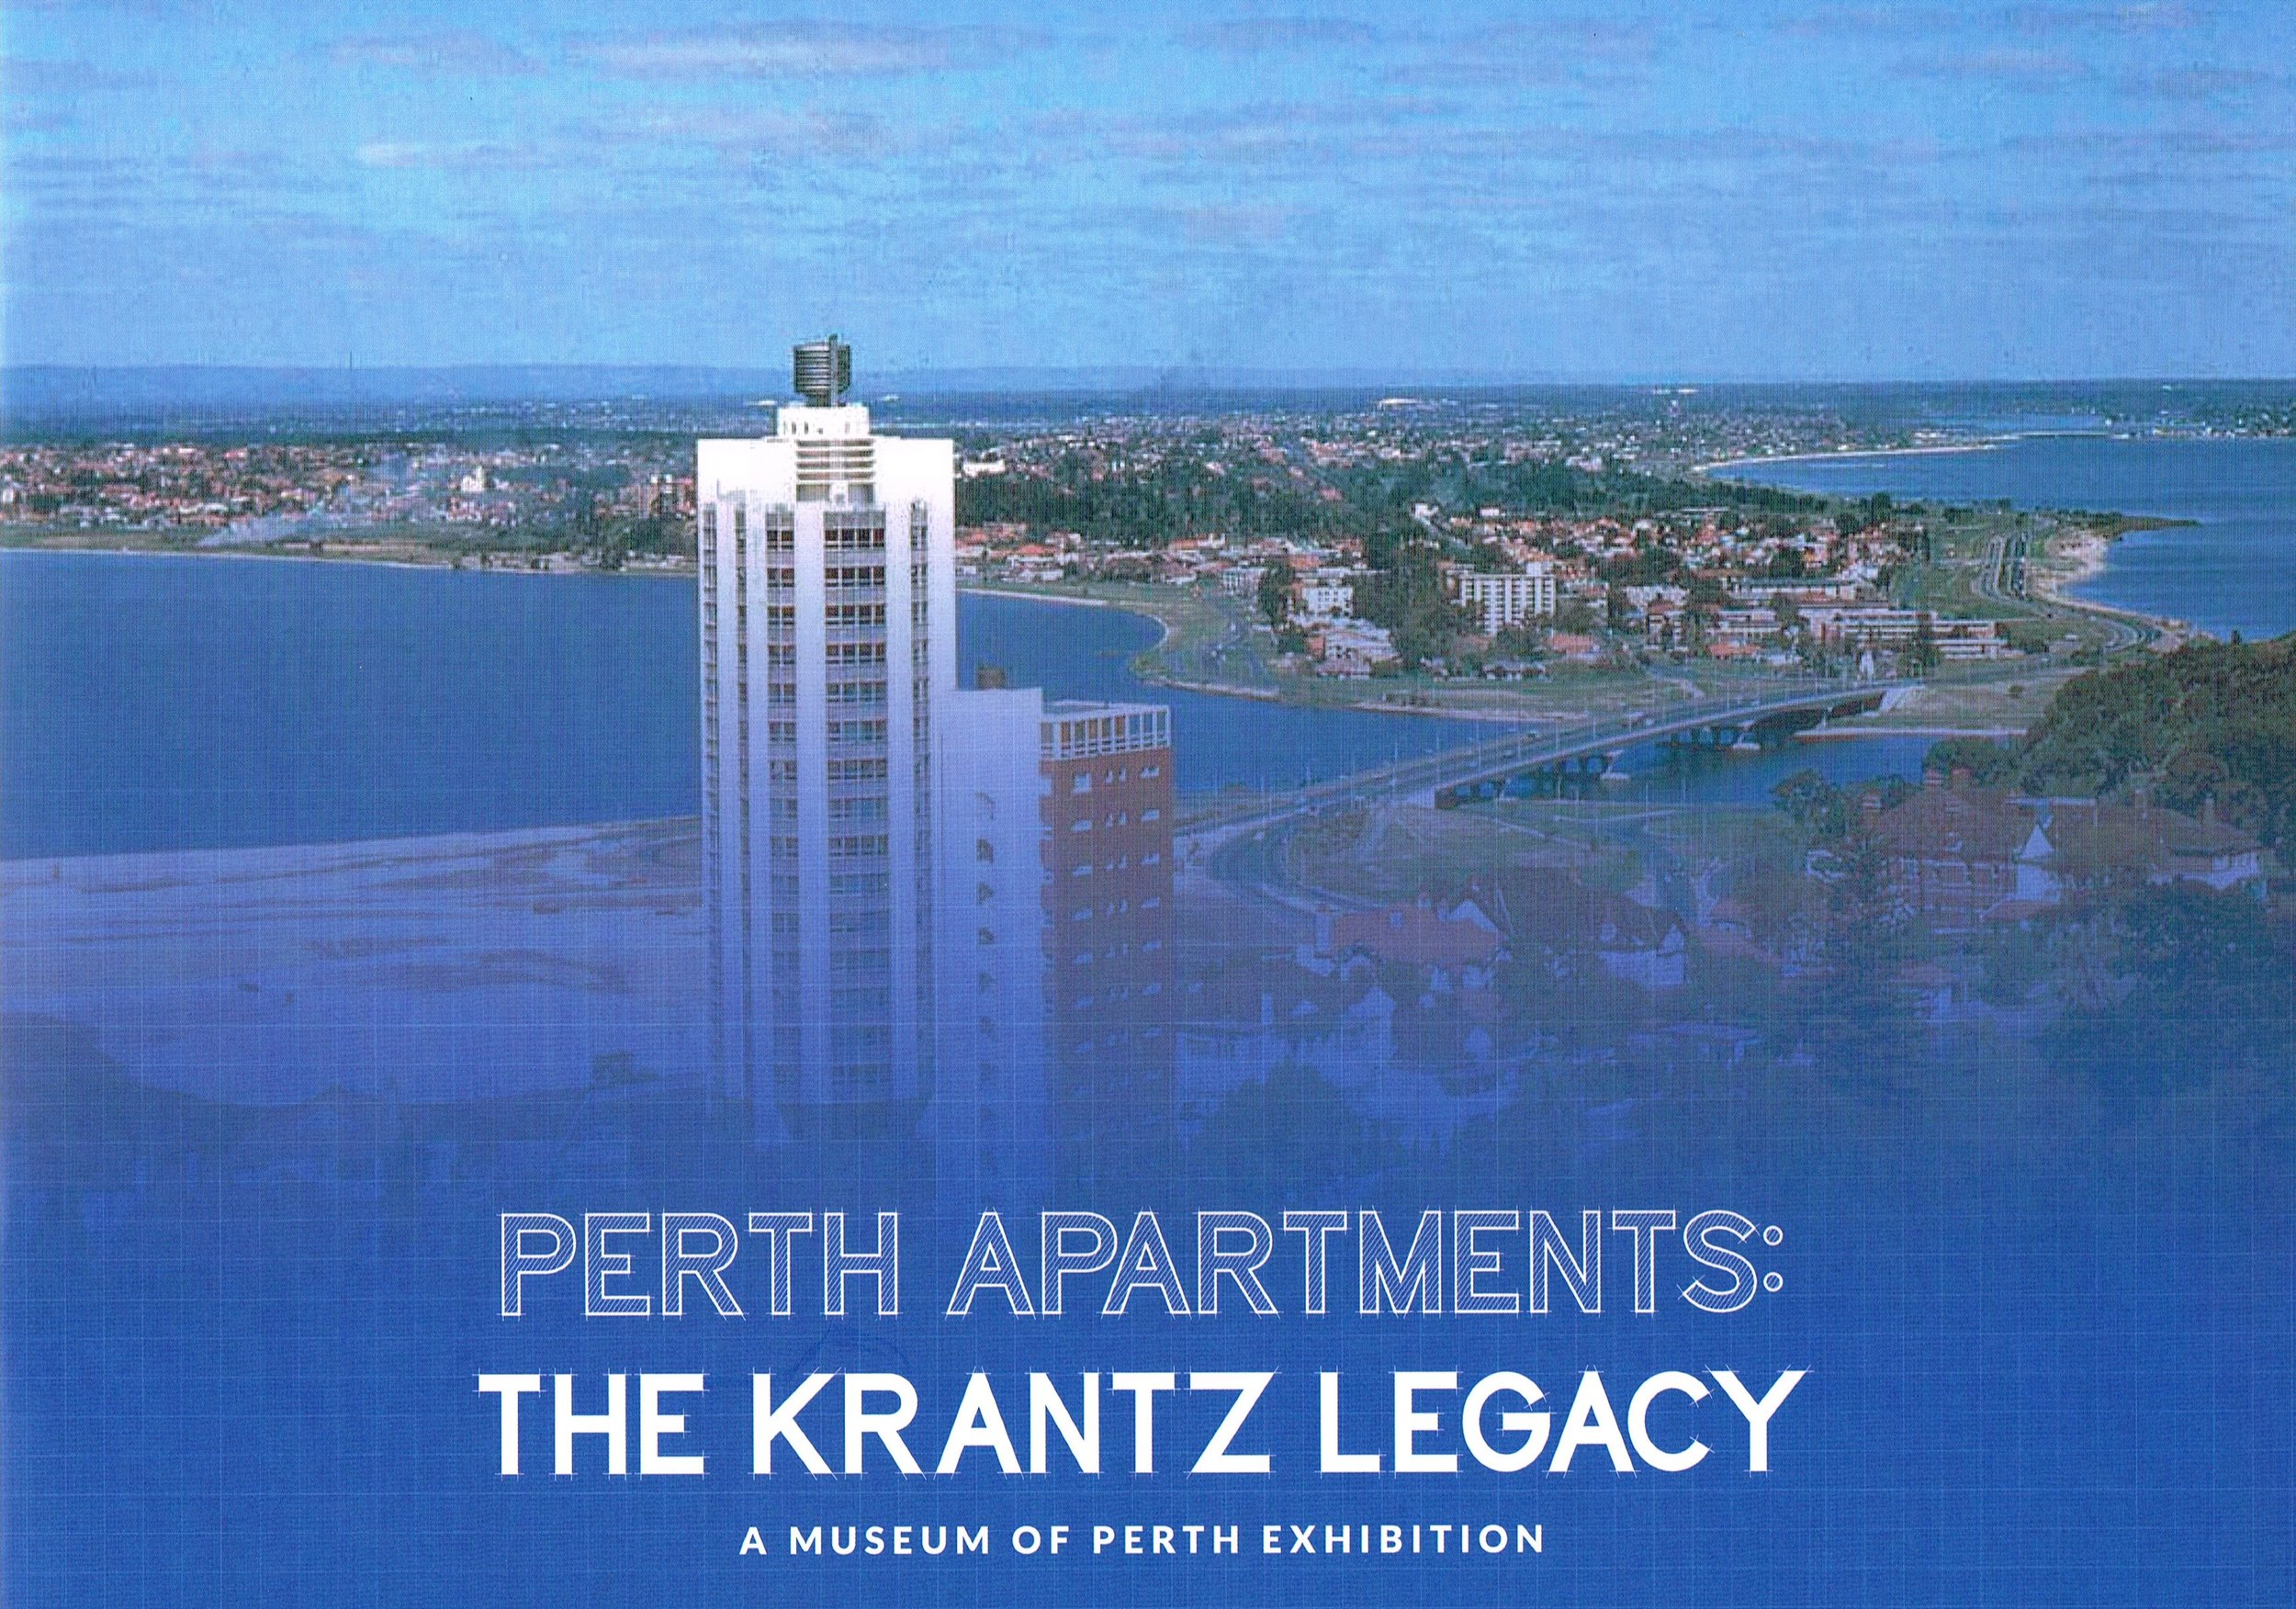 Perth Apartments The Krantz Legacy Booklet Cover